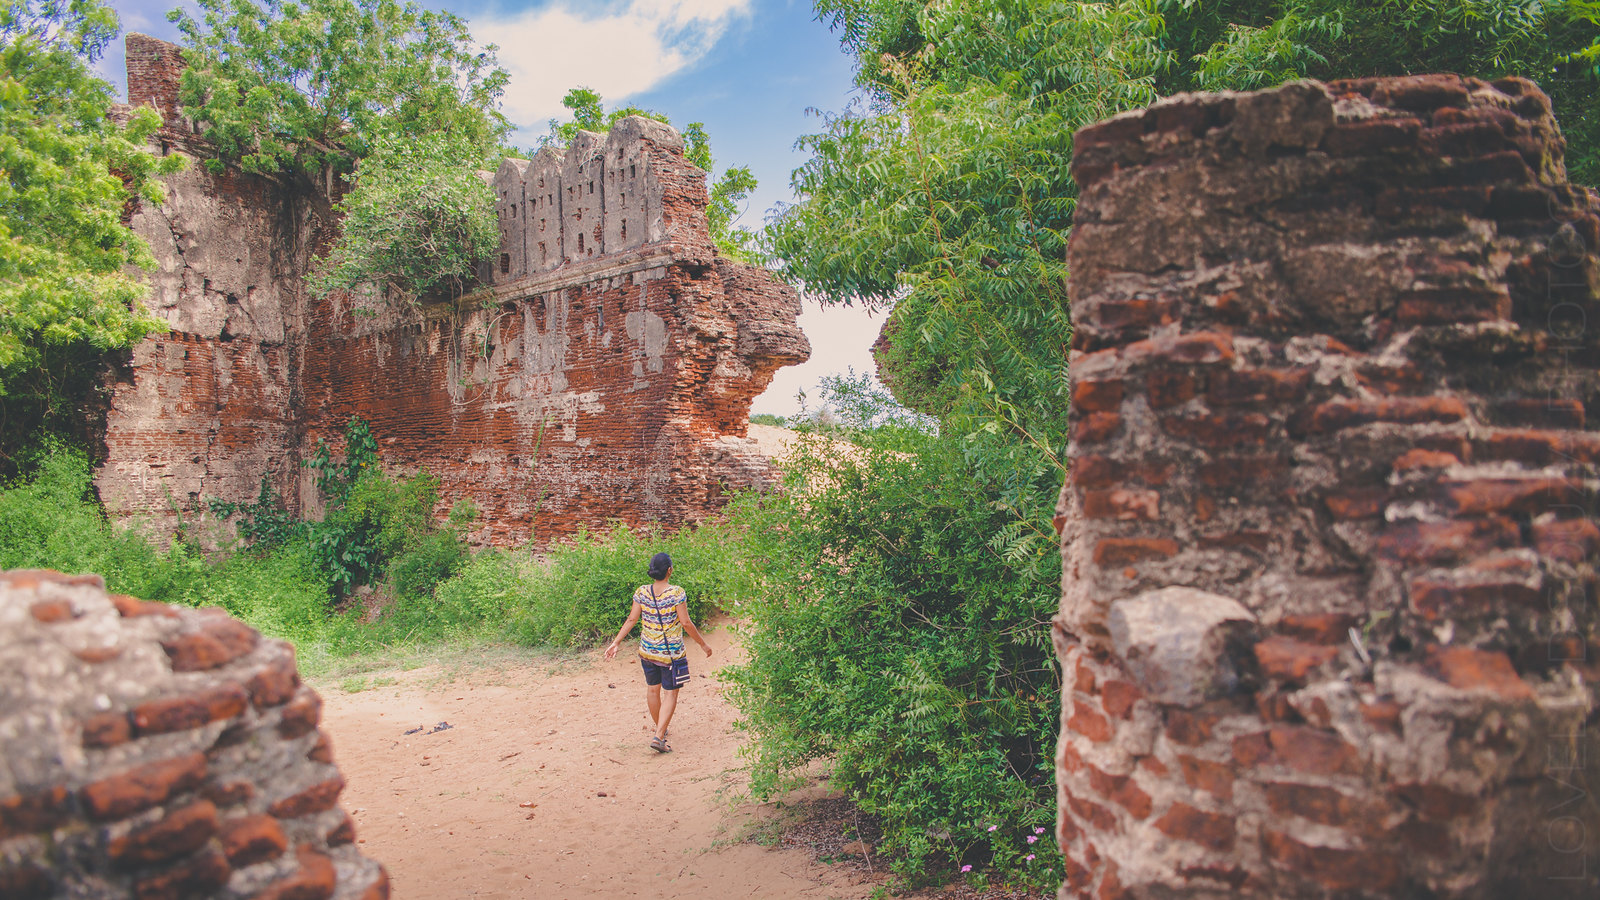 On the ruins of Alamparai Fort & the beauty of forgotten places